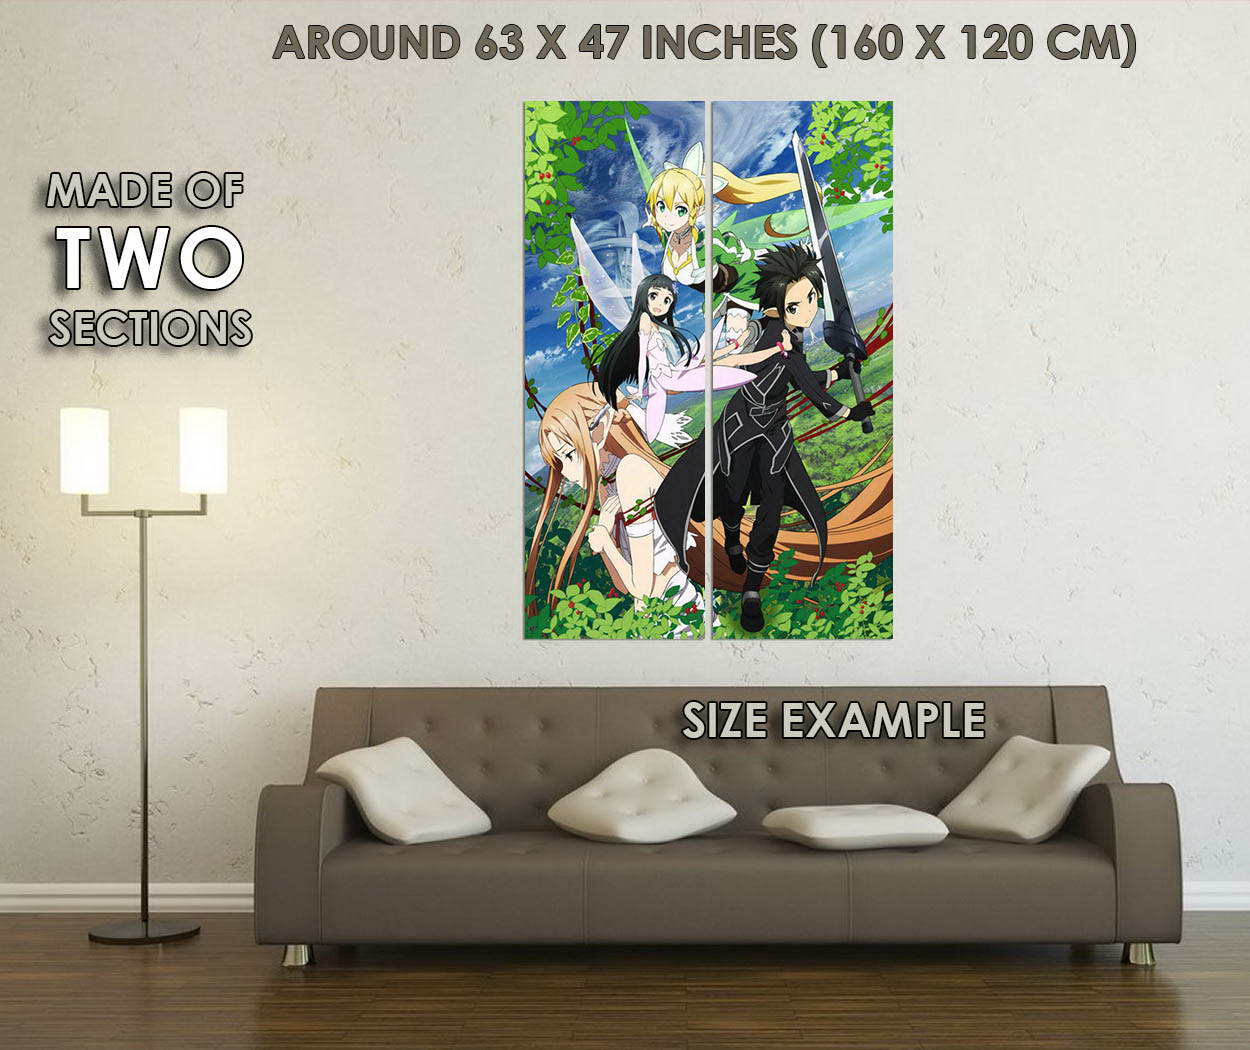 10788-Sword-Art-Online-2-Characters-Japanese-Anime-LAMINATED-POSTER-CA thumbnail 6